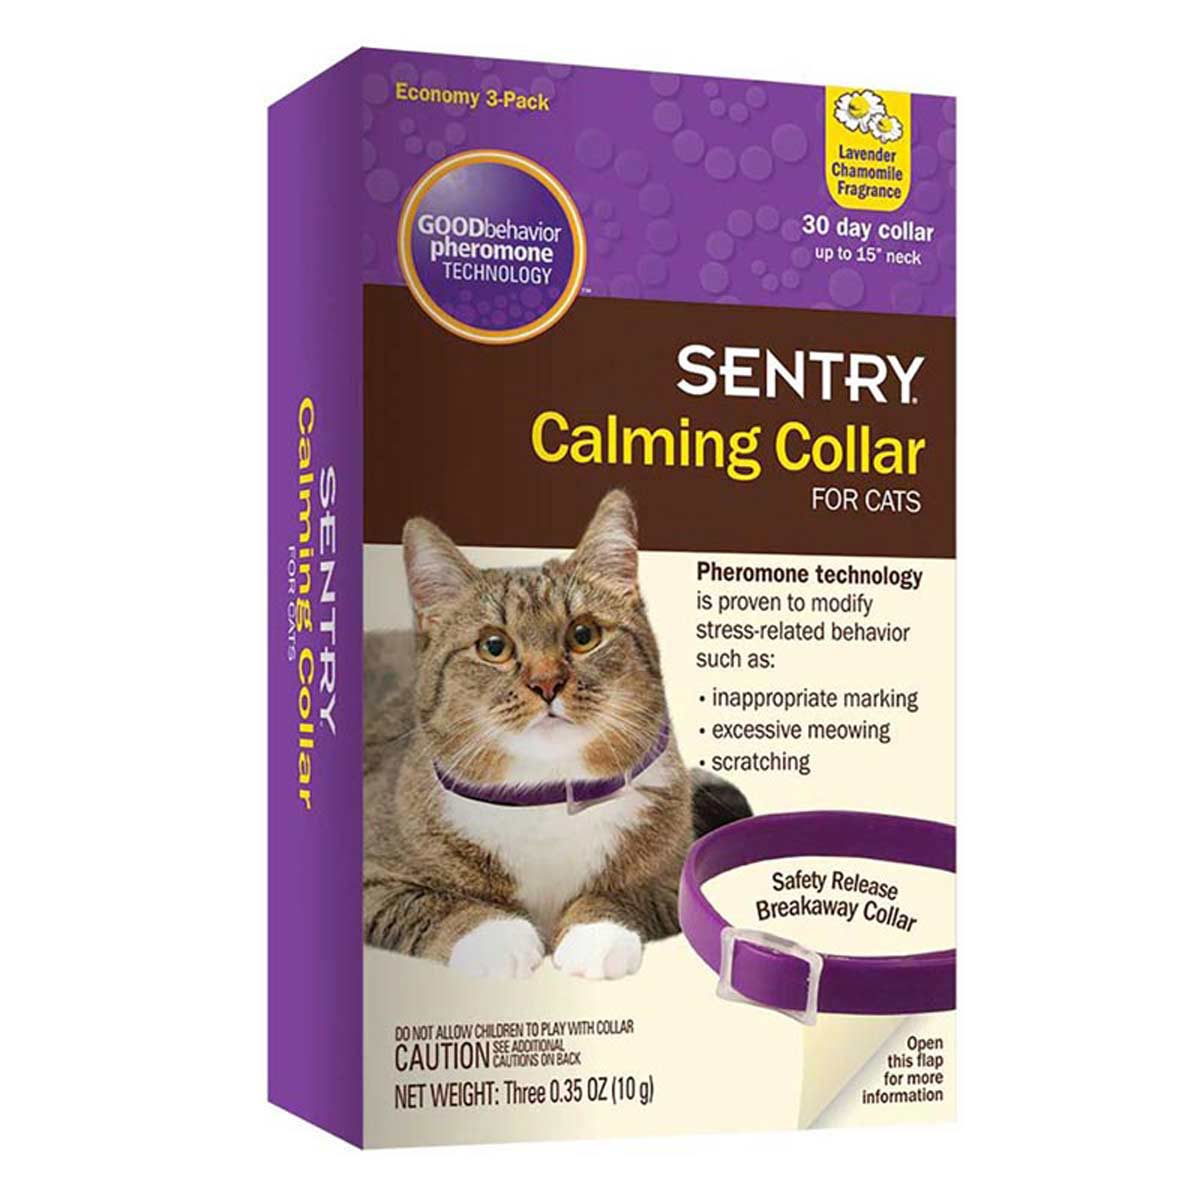 Sentry Calming Collars For Kittens and Cats Up To 15 inch 3 Pack